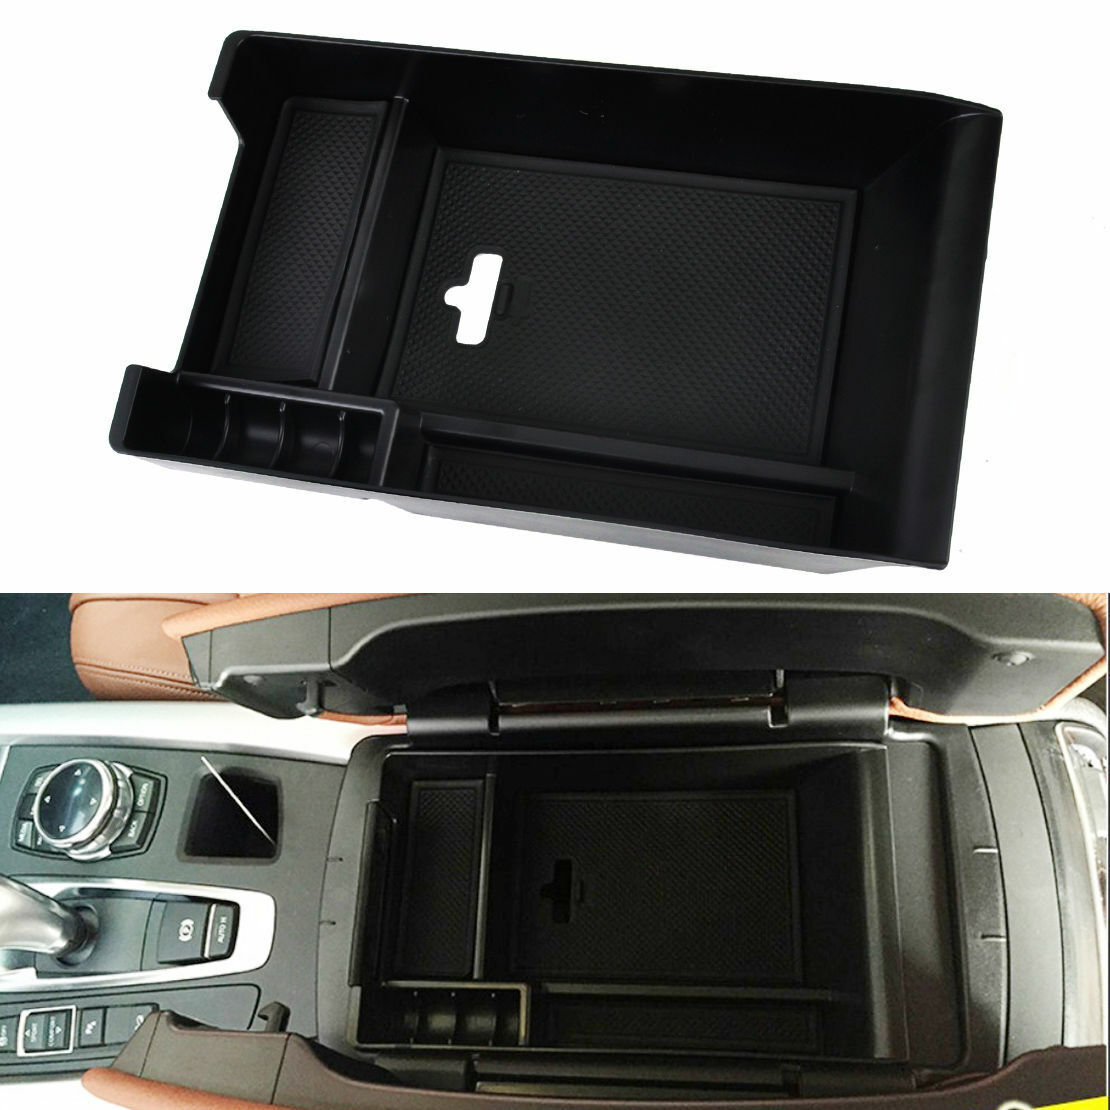 Scoorcar Center Armrest Storage Box for BMW X5 X6 F15 F16 Car-Styling 2014-2018 Phone Glove Tray with Mat Interior Accessories